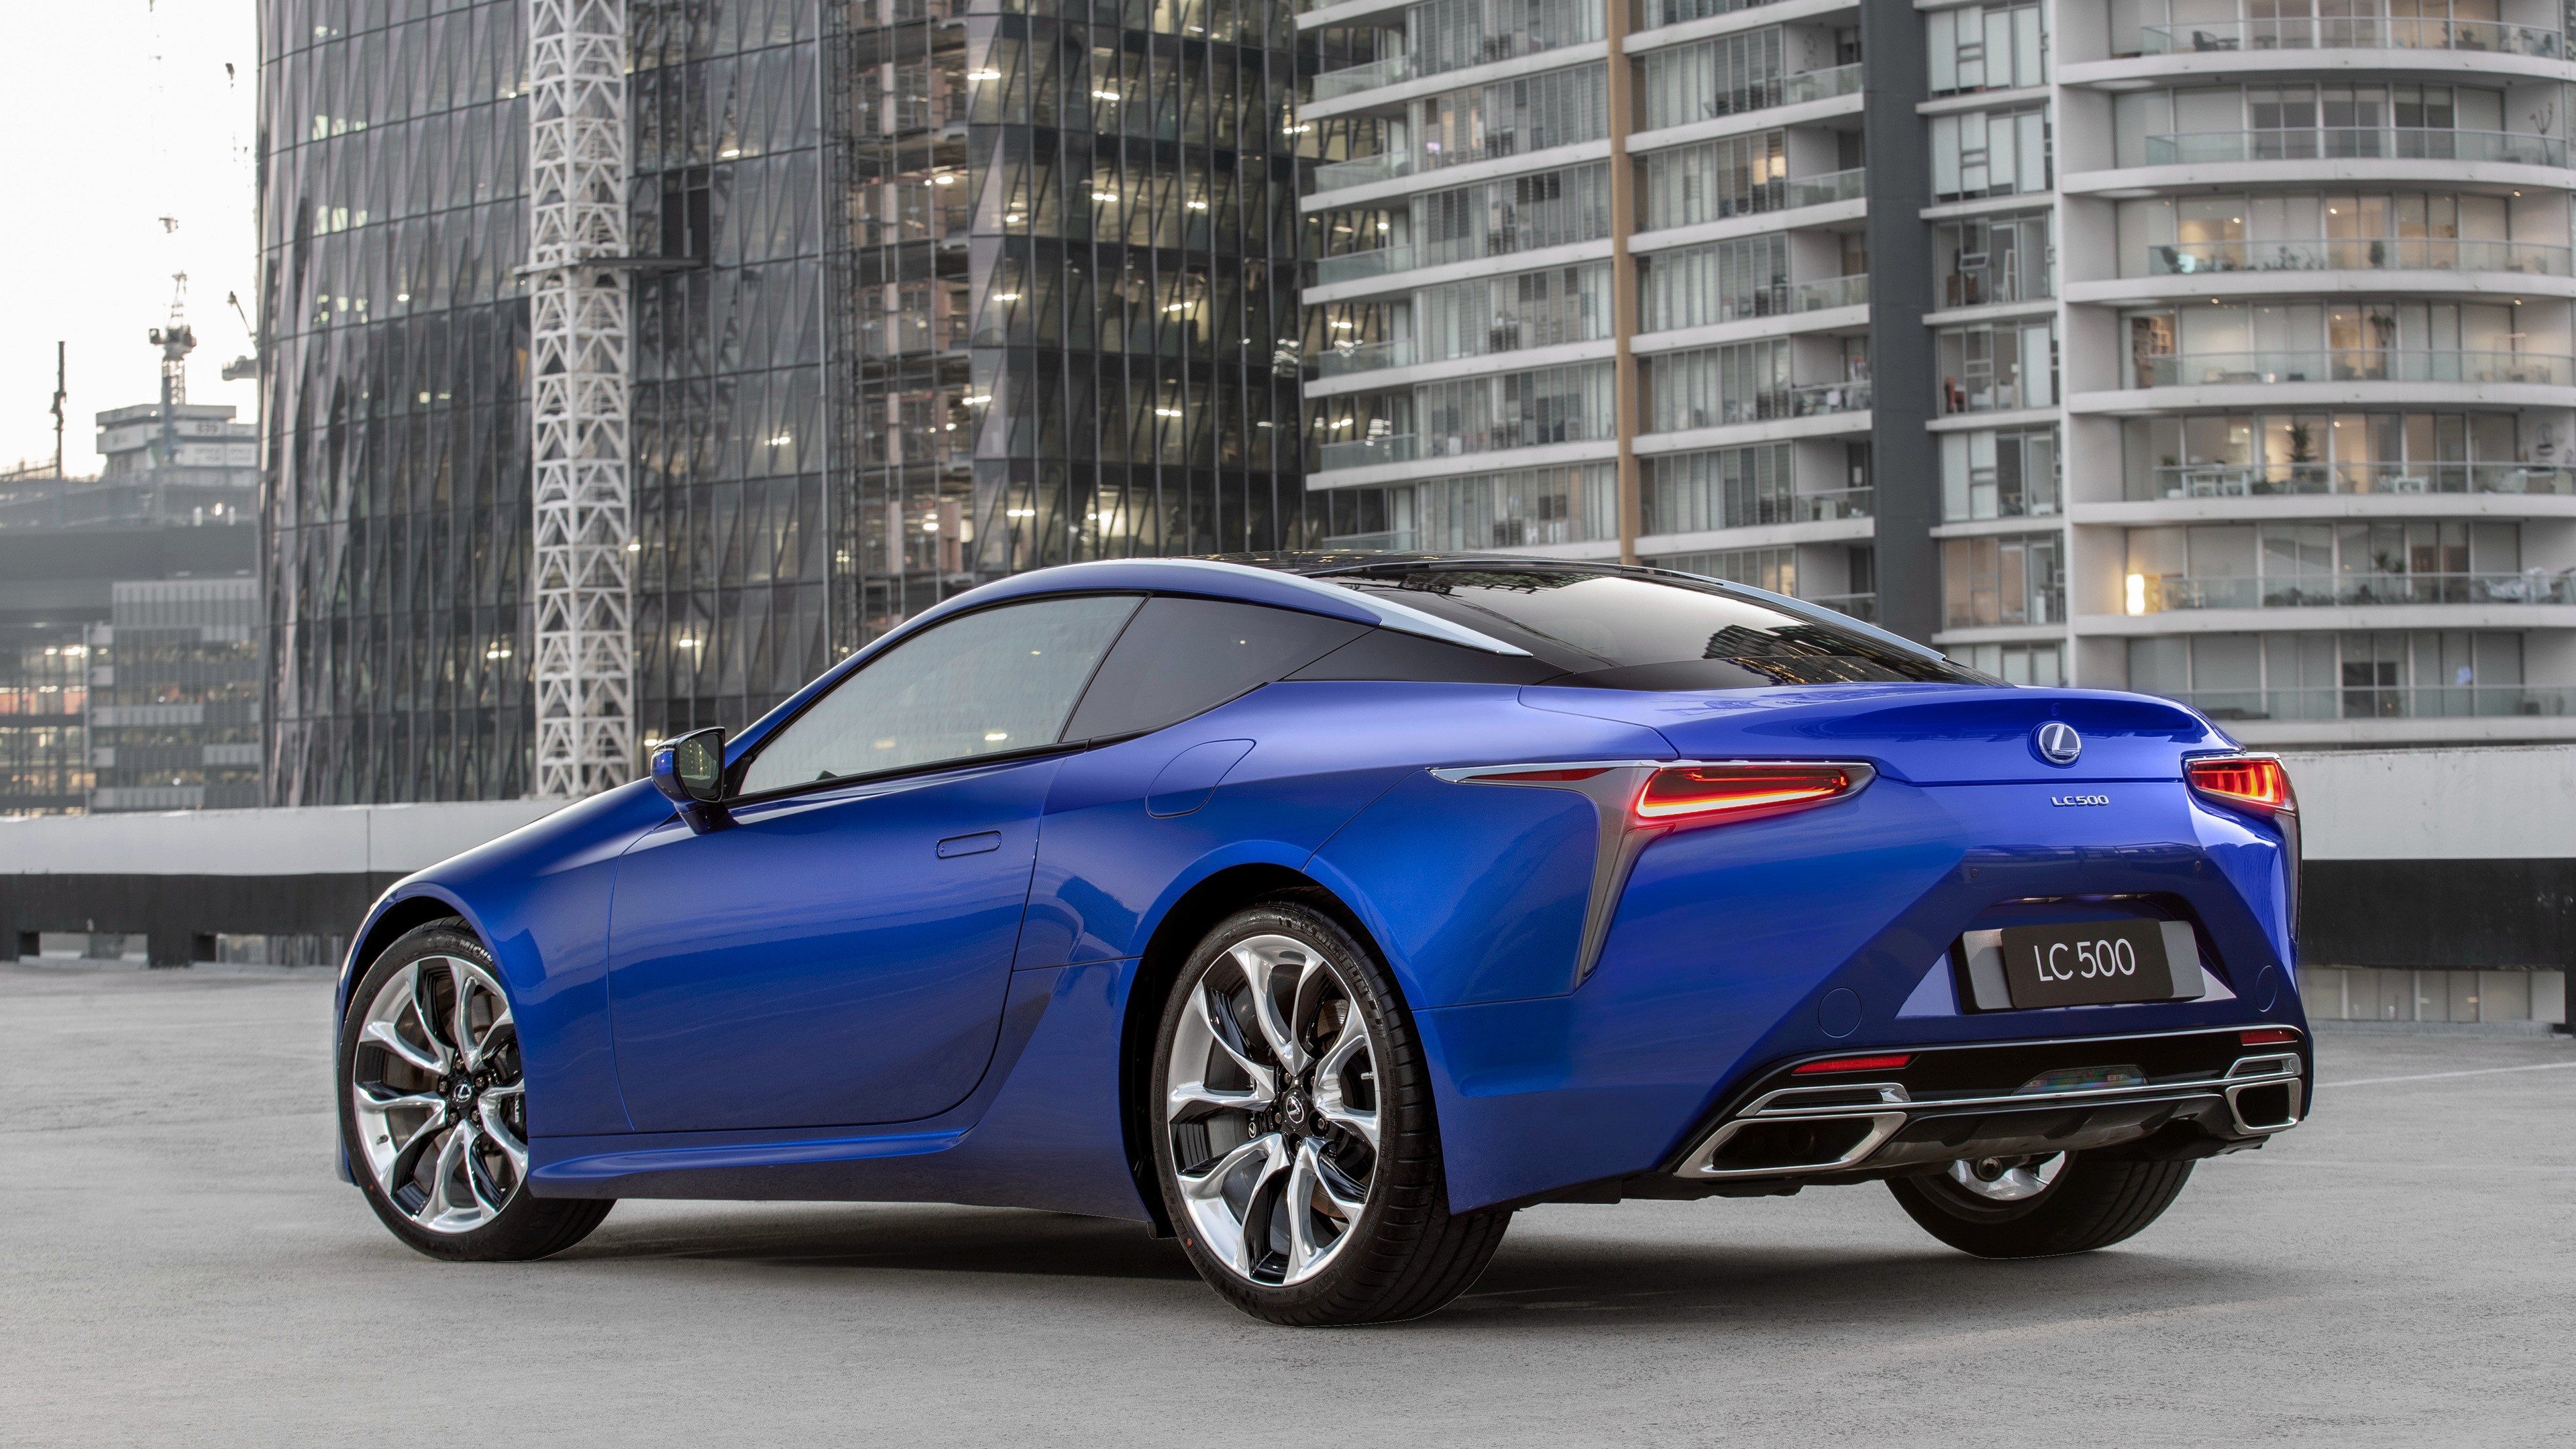 lexus lc 500 limited edition 2018 1539111365 - Lexus LC 500 Limited Edition 2018 - lexus wallpapers, lexus lc 500 wallpapers, hd-wallpapers, 4k-wallpapers, 2018 cars wallpapers